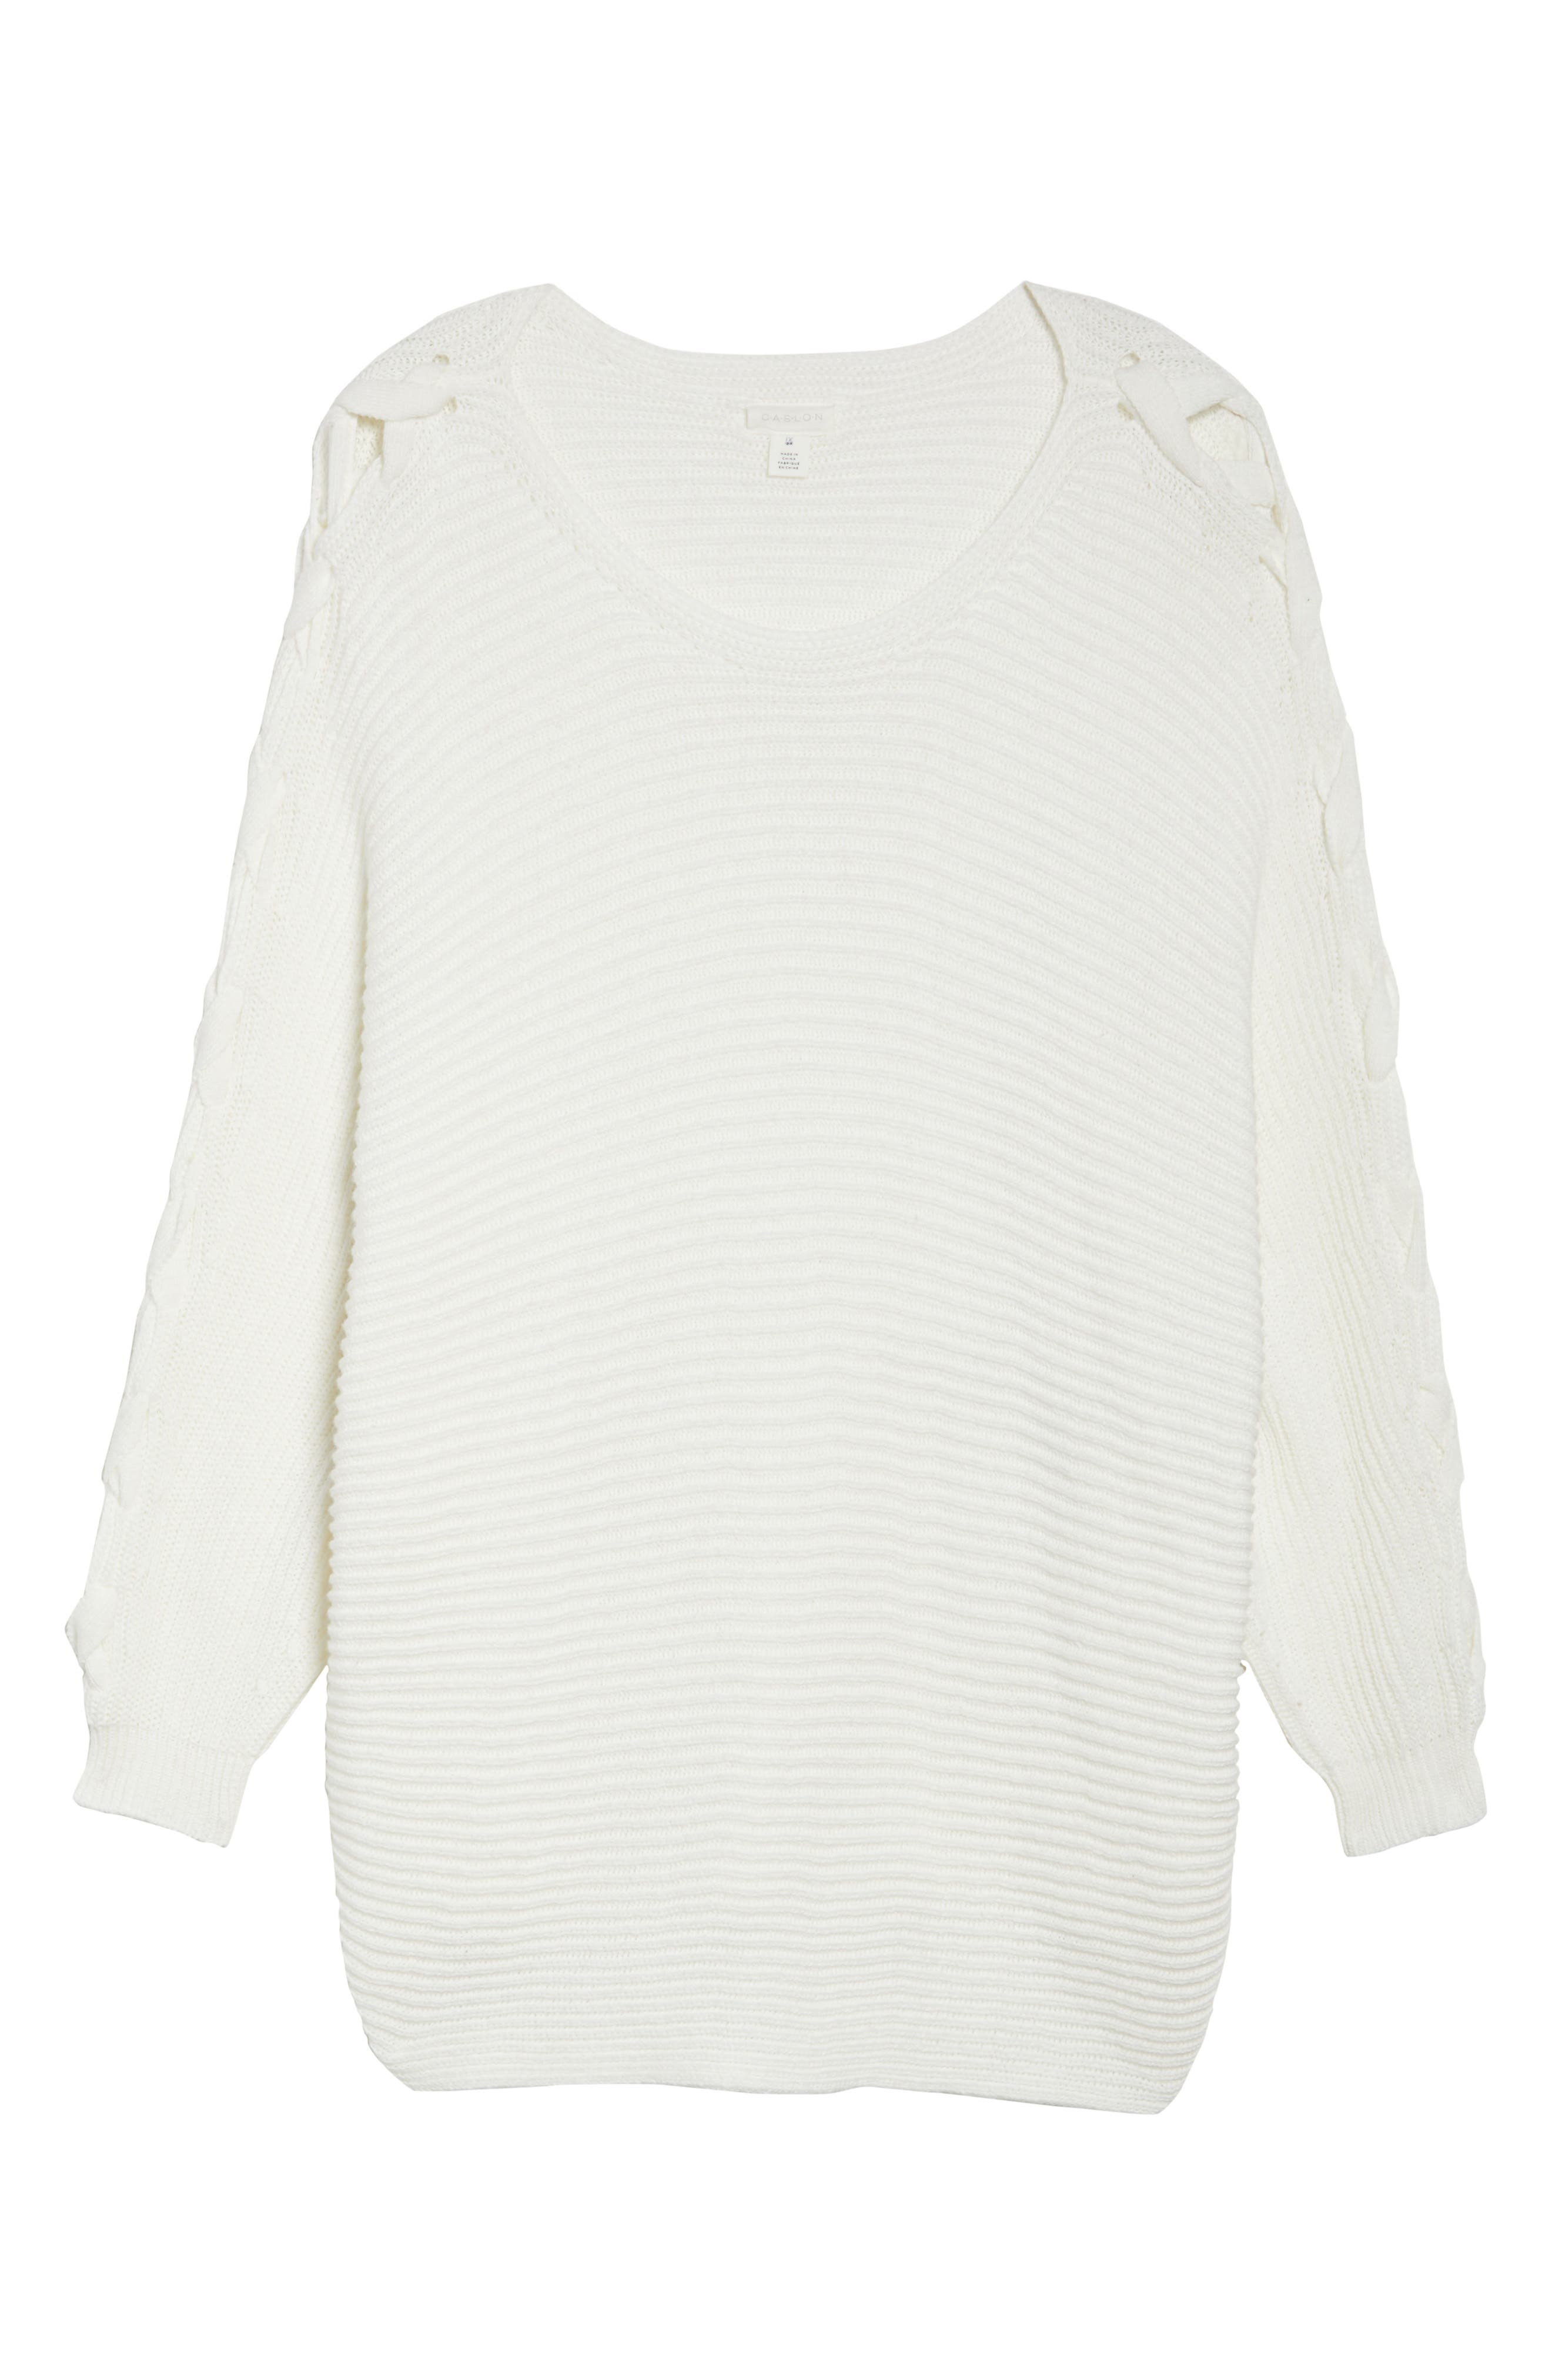 Lace-Up Sleeve Sweater,                             Alternate thumbnail 6, color,                             Ivory Cloud